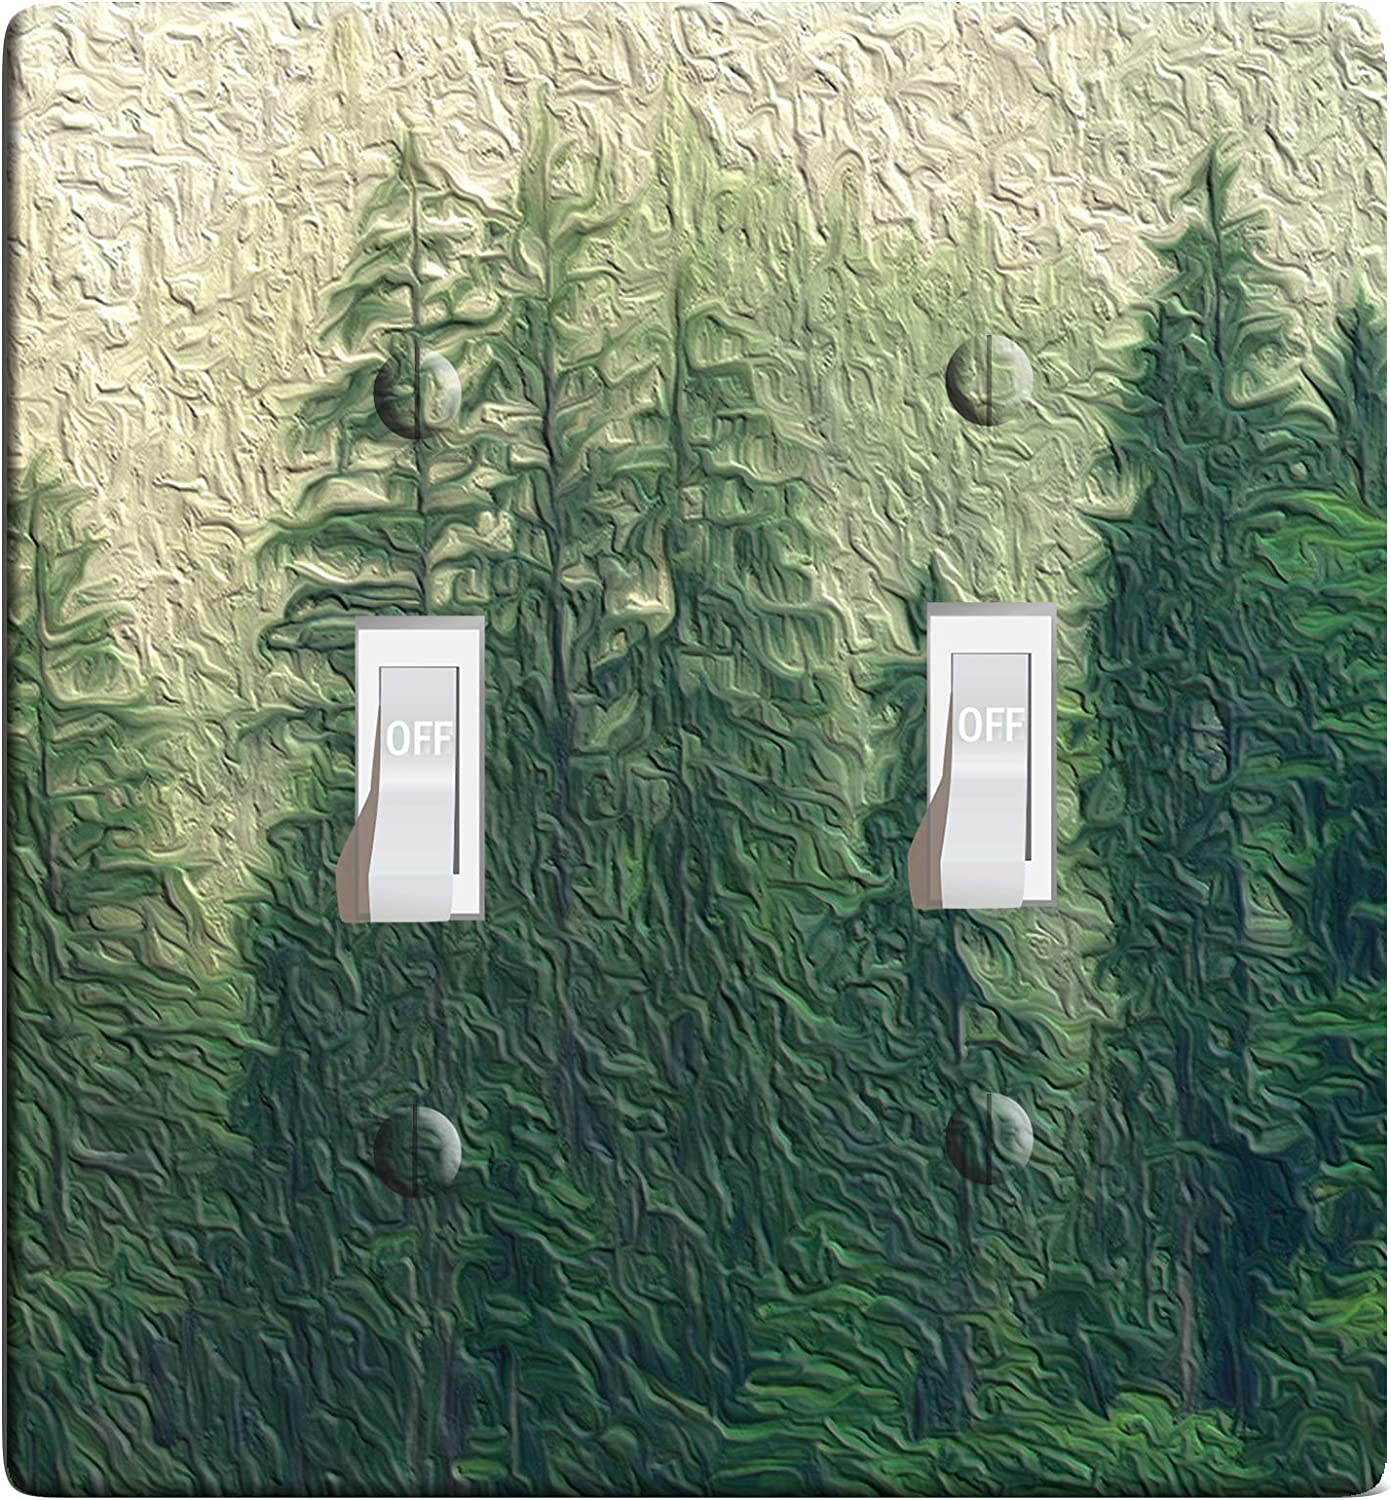 3 D Effect Printed Maxi Metal Pine Trees Light Switch Outlet Cover F0095 2 Gang Toggle Amazon Com